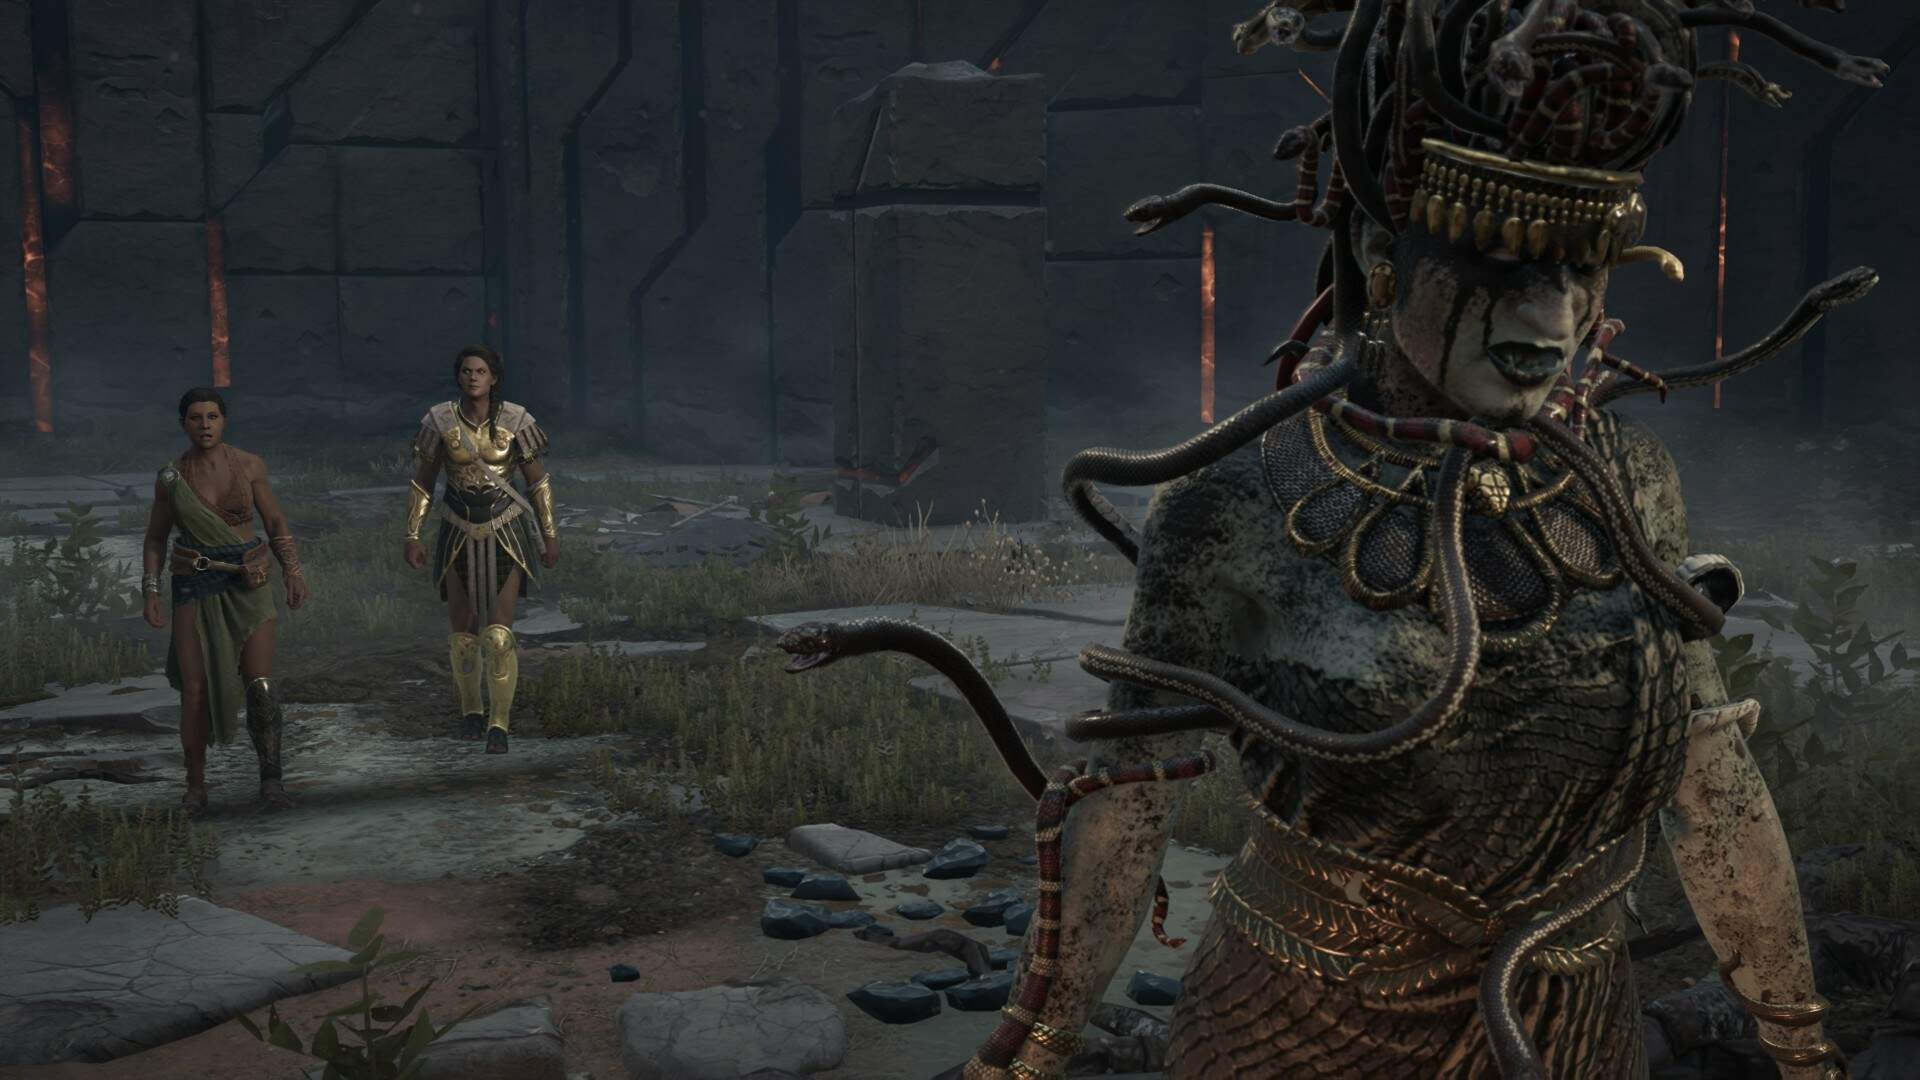 Assassin's Creed Odyssey: How to Beat the Medusa Boss Fight